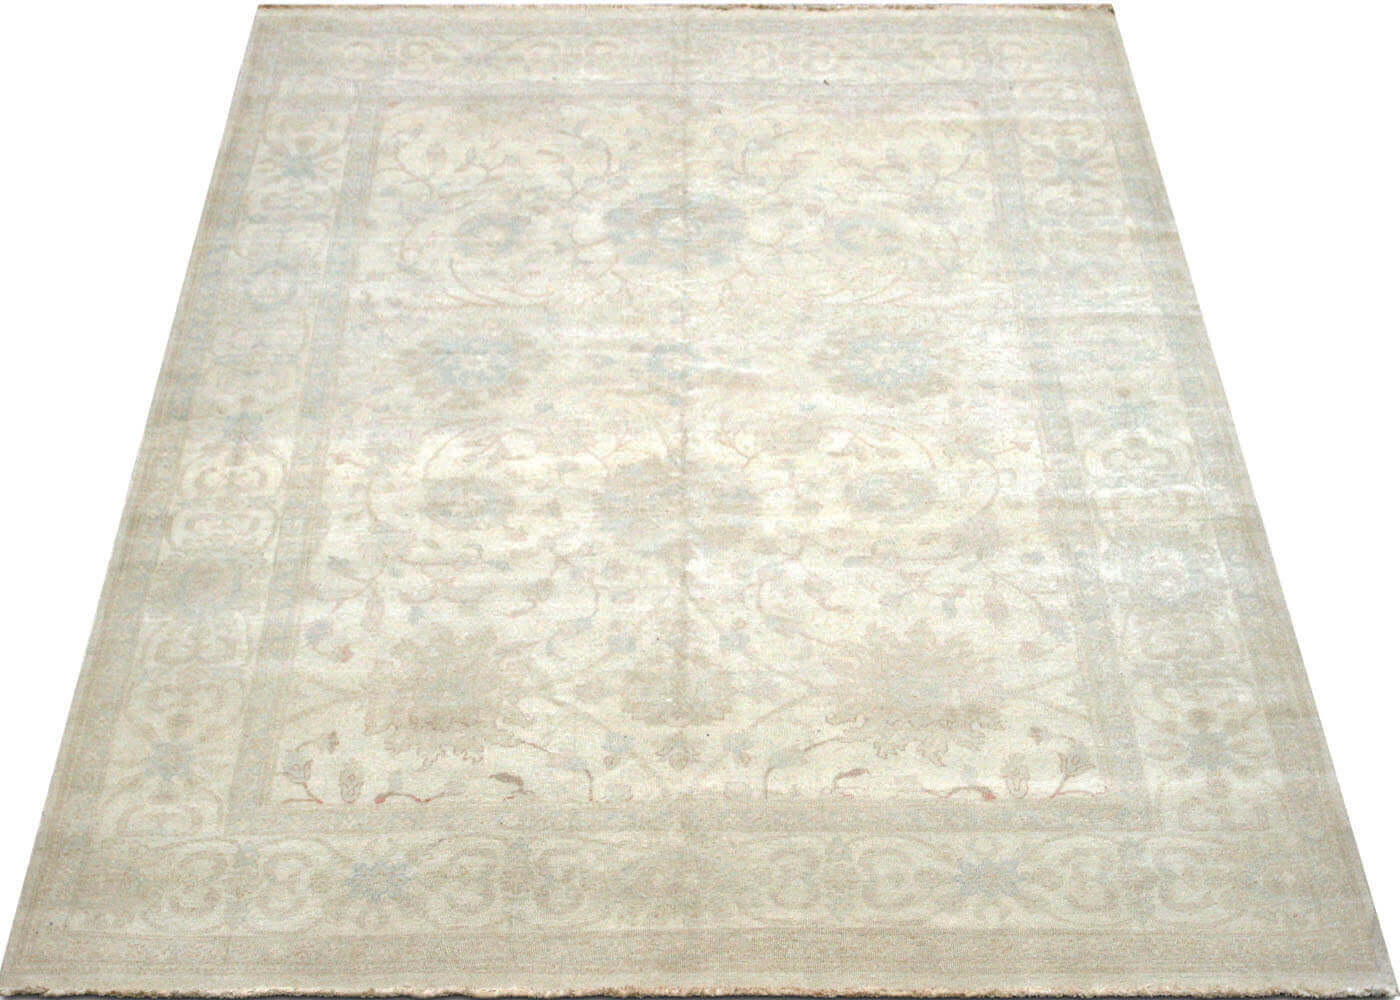 "Recently Woven Egyptian Tabriz Carpet - 7'11"" x 10'3"""